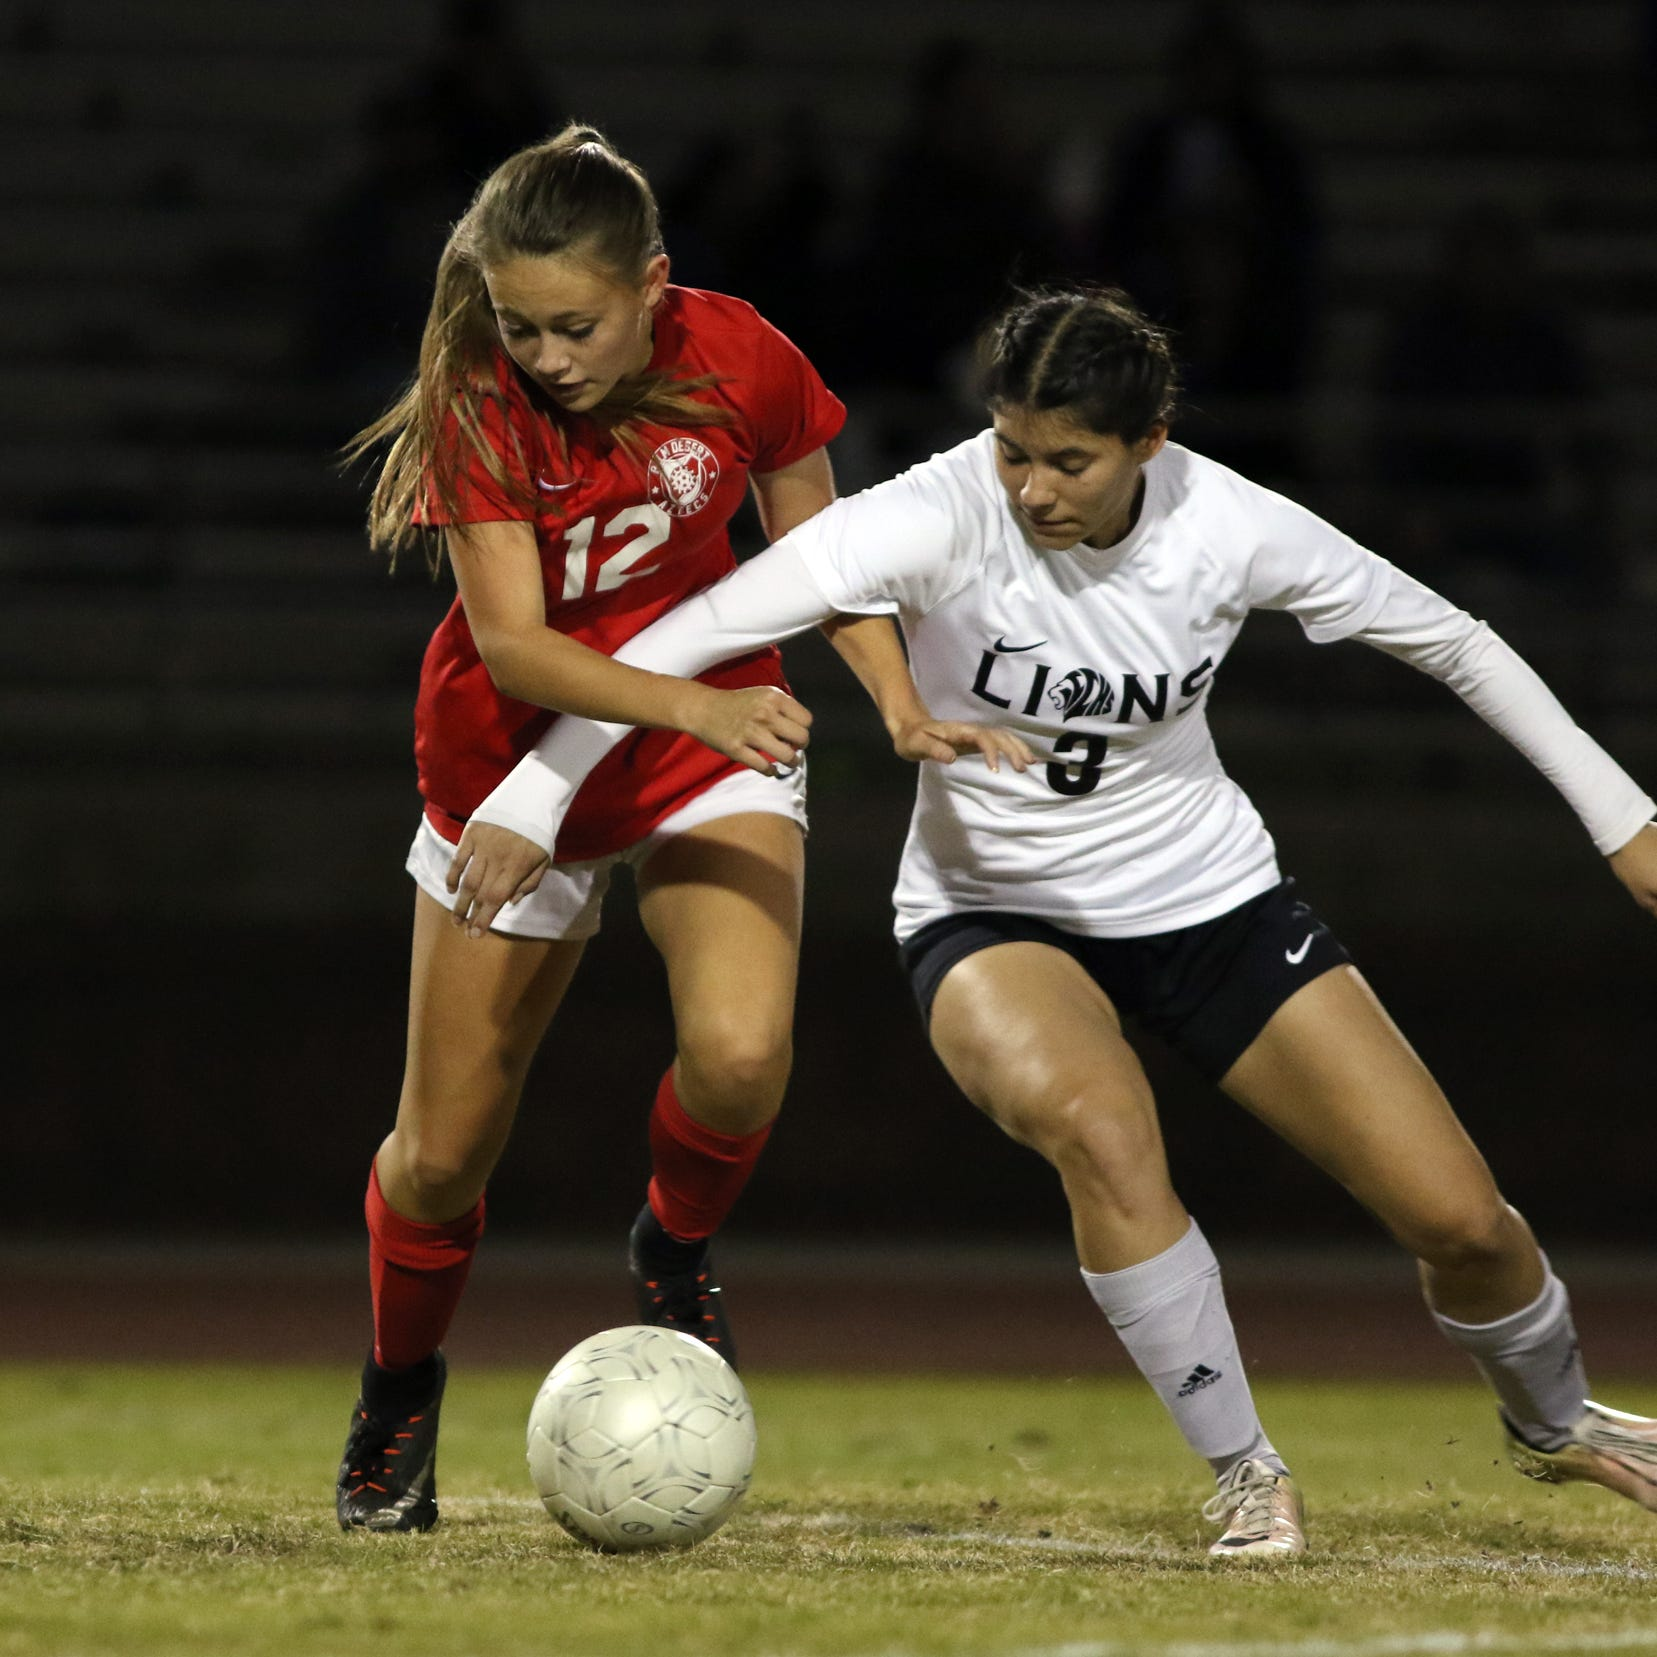 Girls' soccer: Who is the team to beat and who are the top players returning as new season begins?